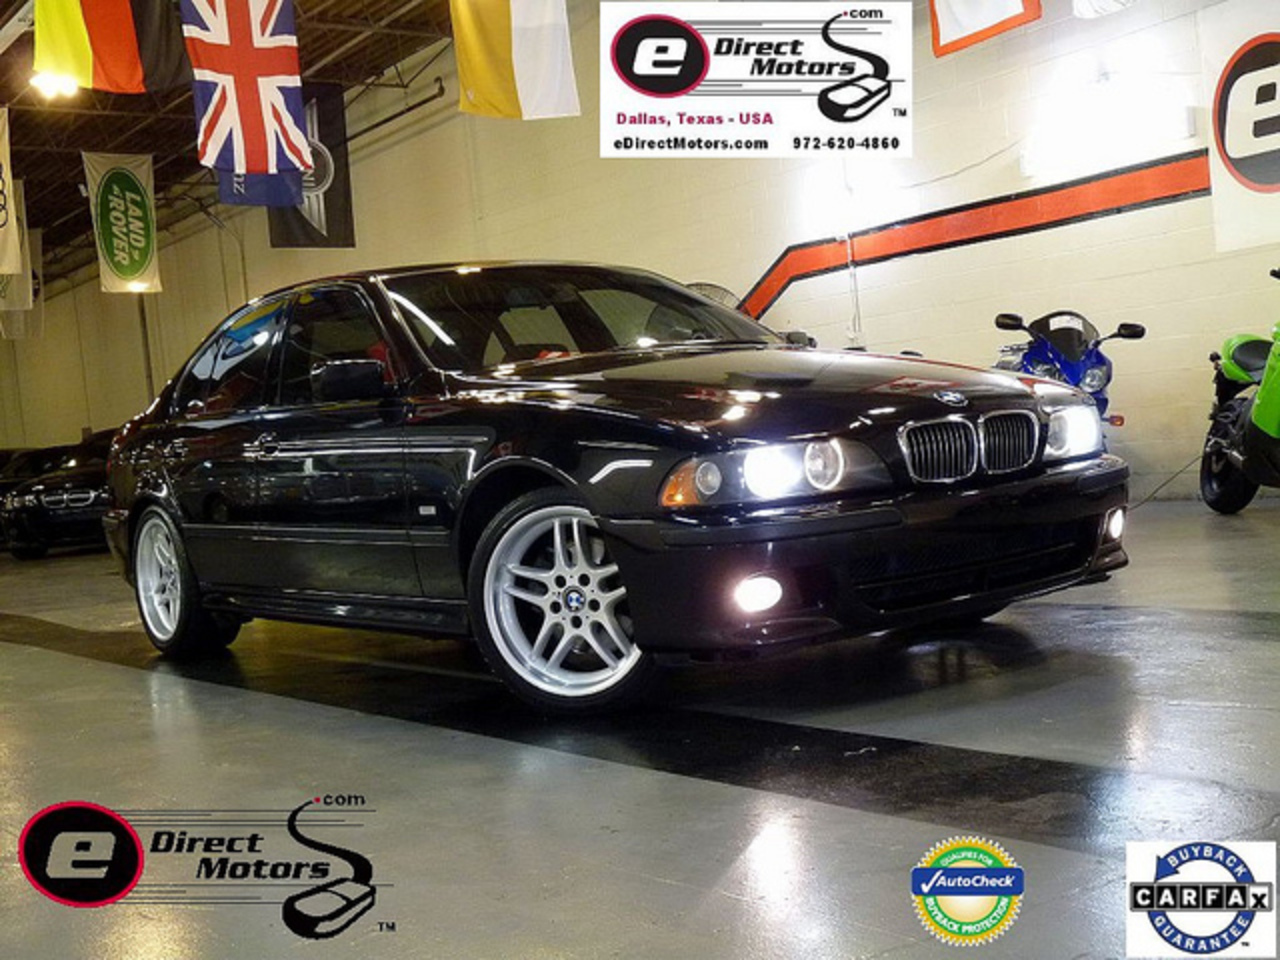 2003 BMW 540i ///M SPORT 6-Speed | Flickr - Photo Sharing!